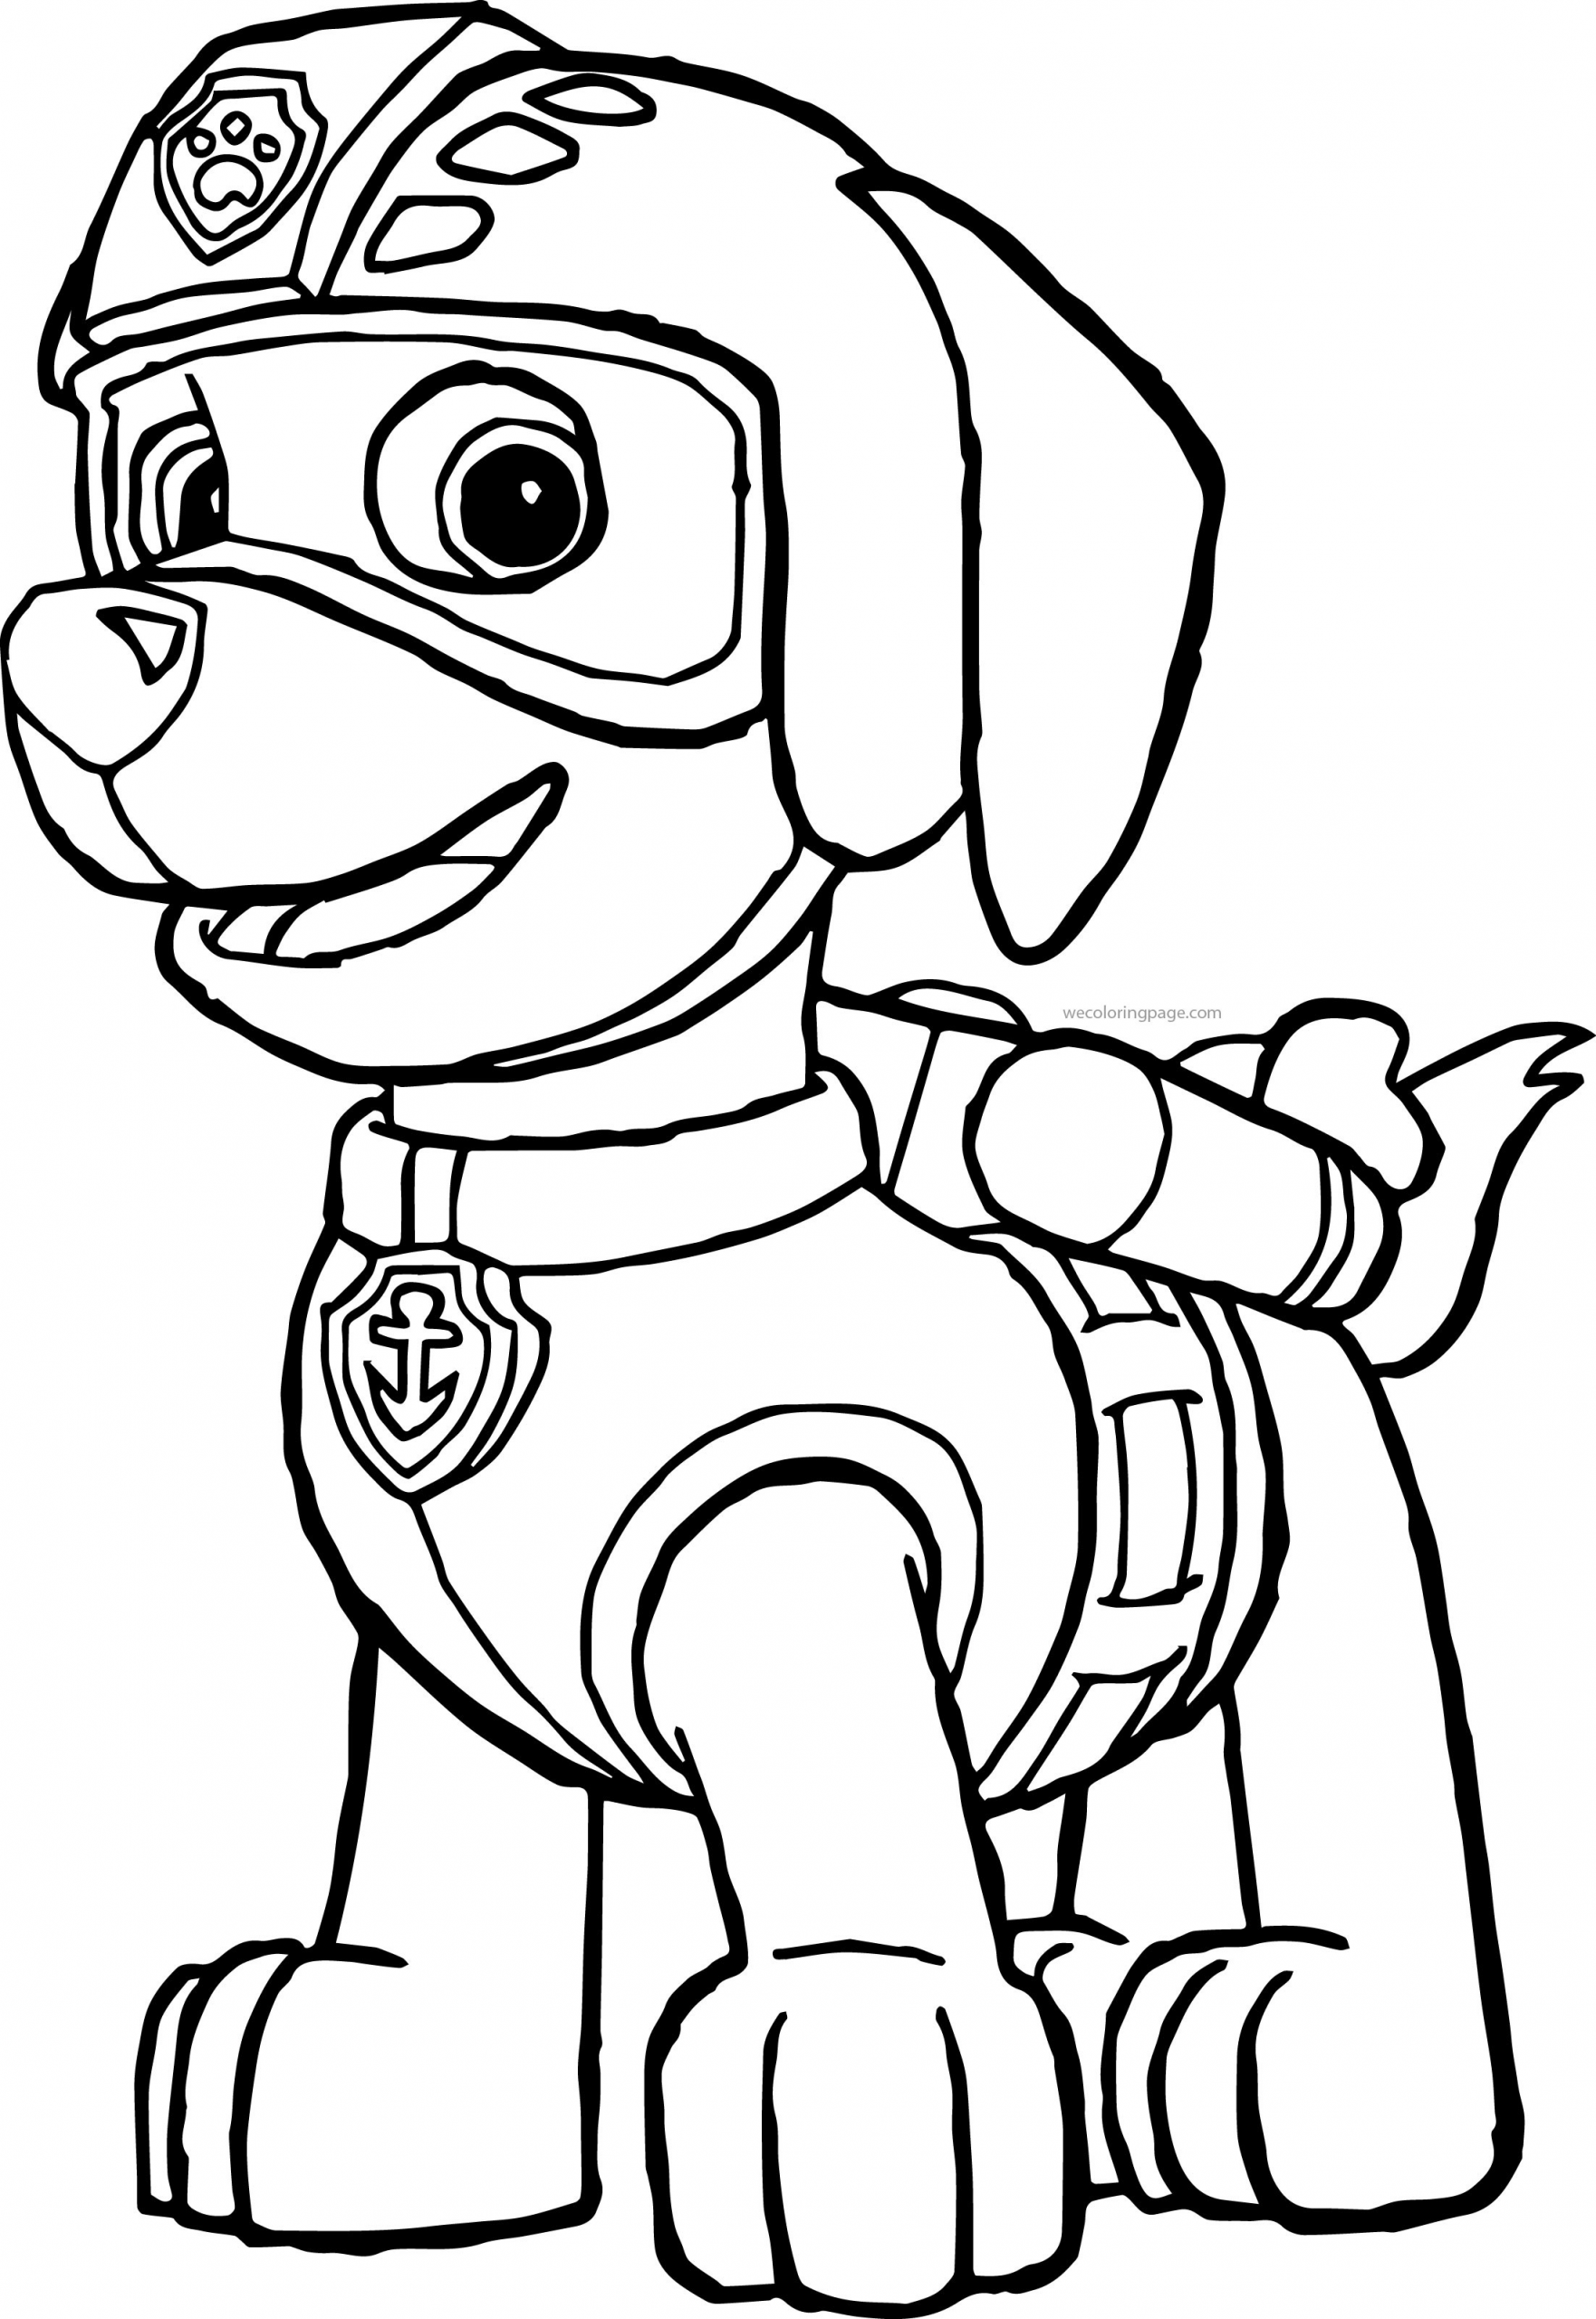 Paw Patrol Tracker Coloring Page Youngandtae Com In 2020 Paw Patrol Coloring Pages Paw Patrol Coloring Paw Patrol Printables